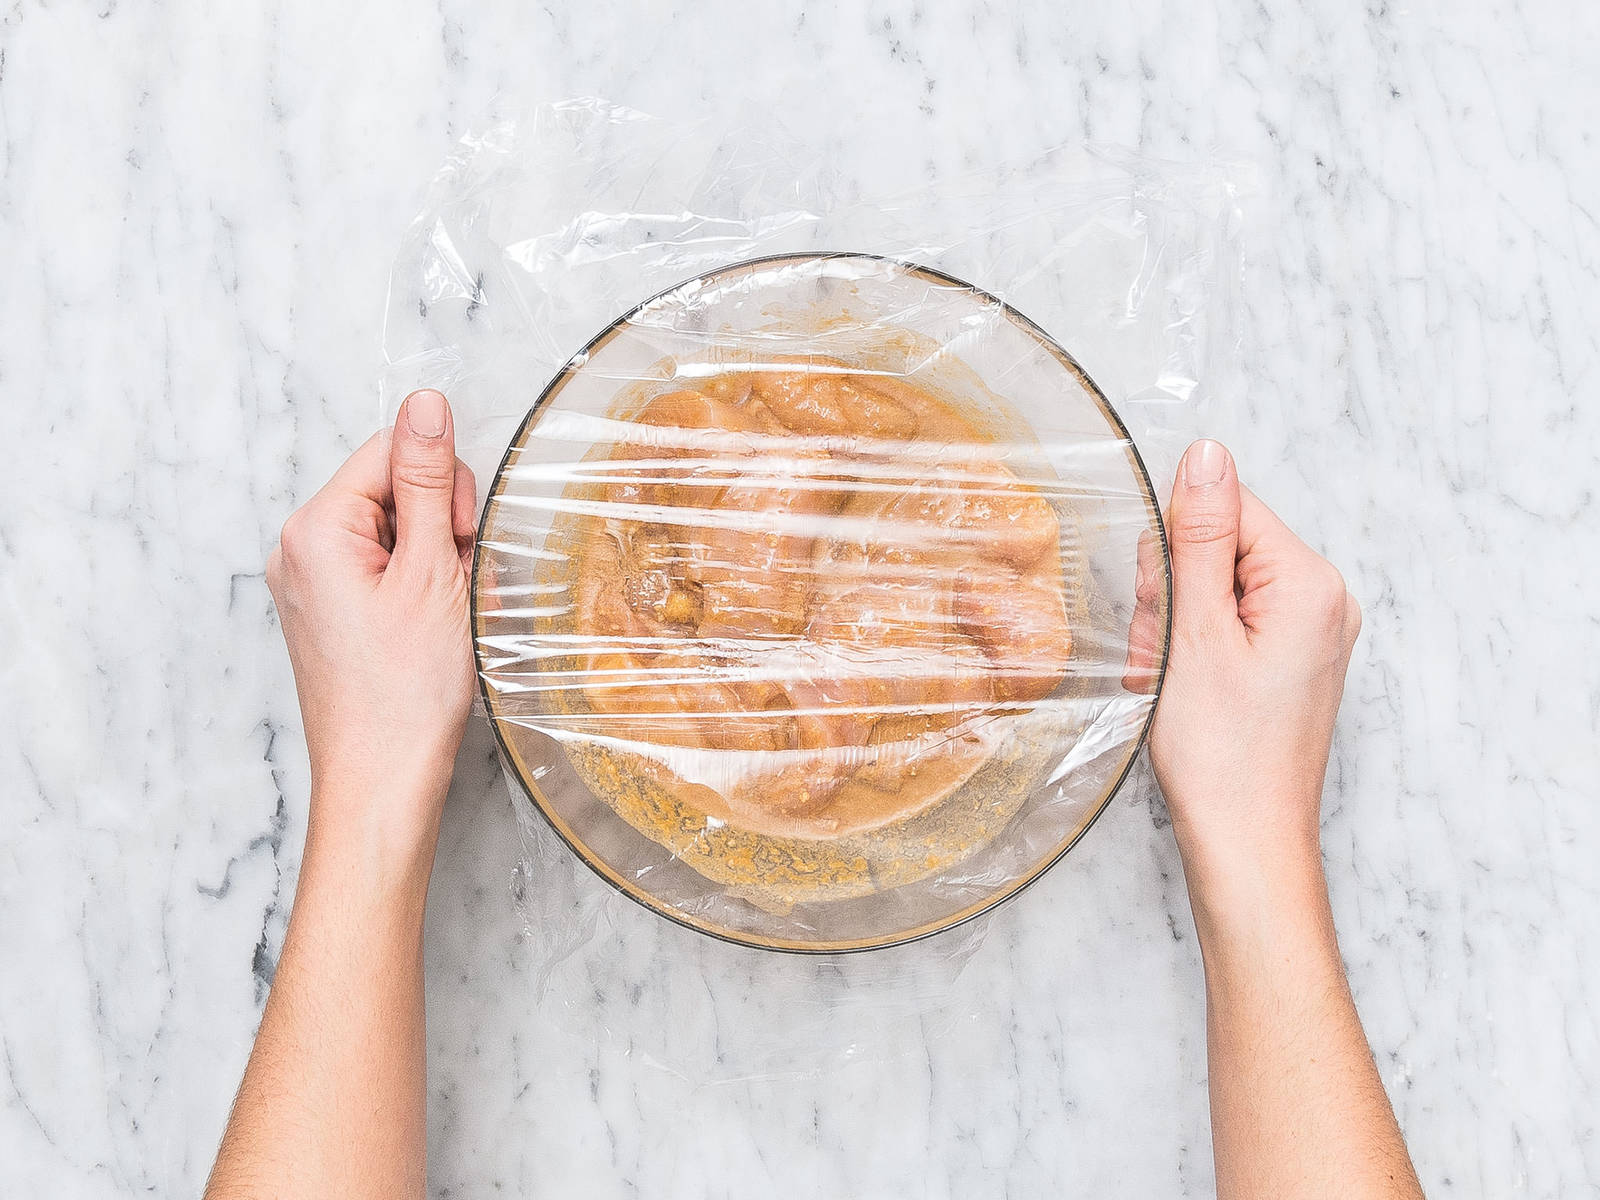 Cut chicken breast into strips and place in medium bowl. Pour in just over half of the sauce and some of the sesame oil into the bowl with the chicken. Mix to combine, and cover with plastic wrap. Rest for at least 2 hrs. or overnight in the fridge.